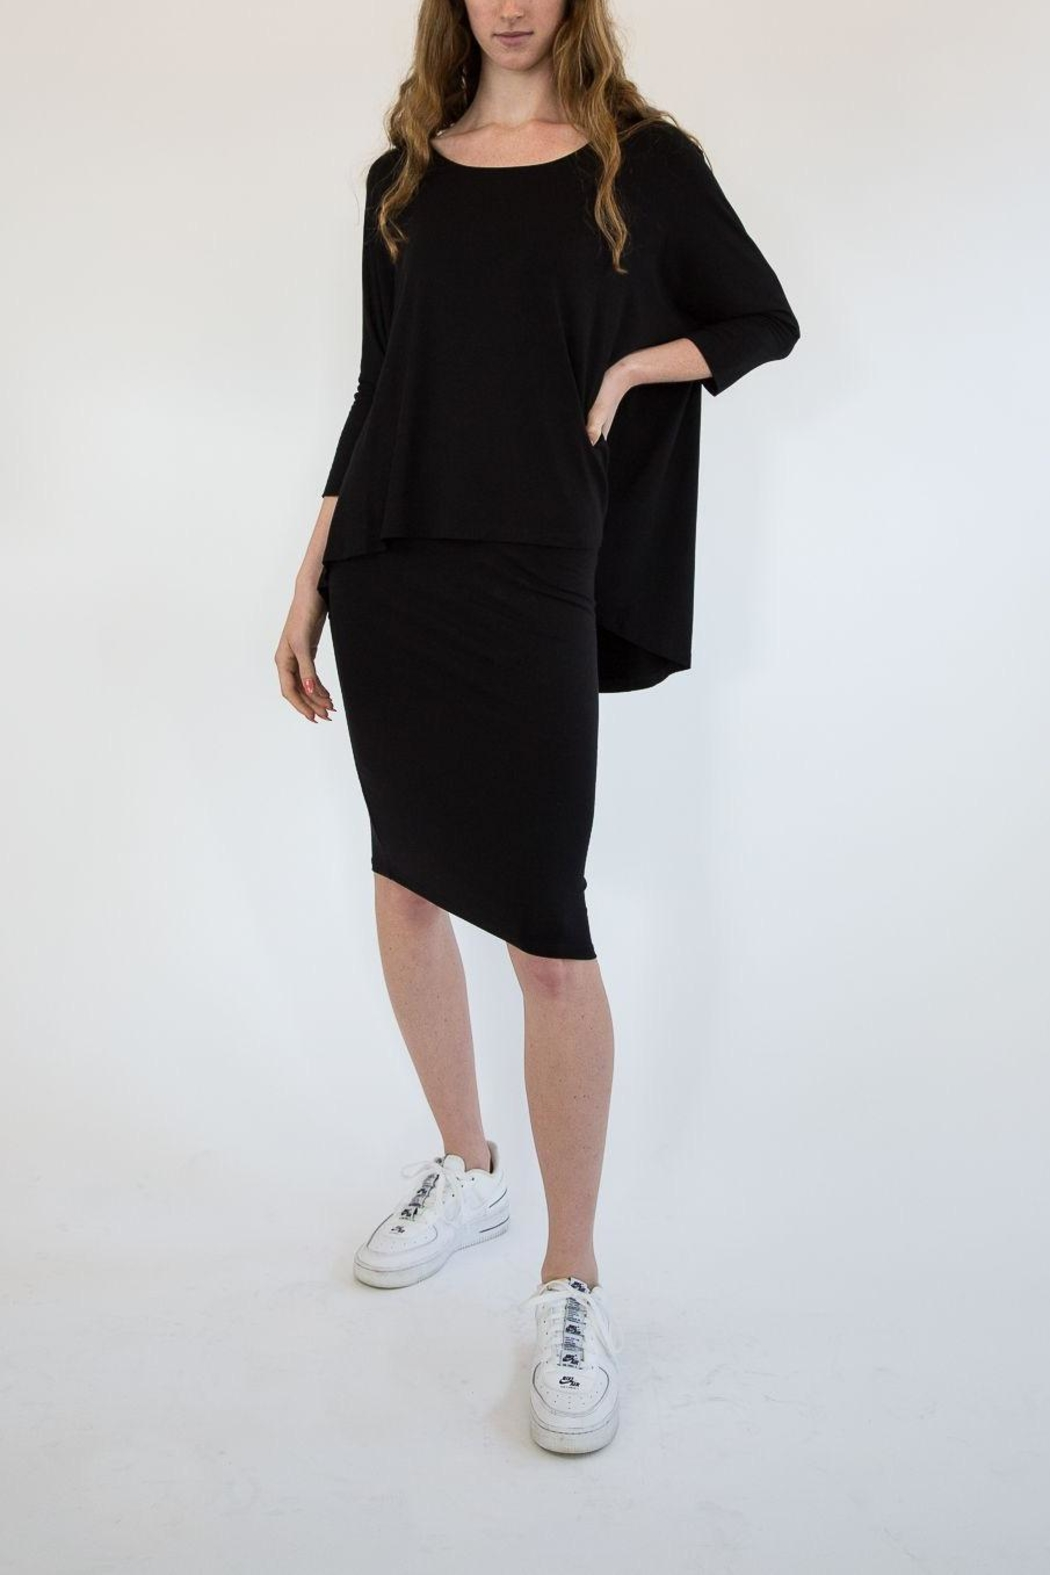 Isle Apparel One Piece Knit Dress With Fitted Skirt With a Loose Overlay Top - Front Cropped Image